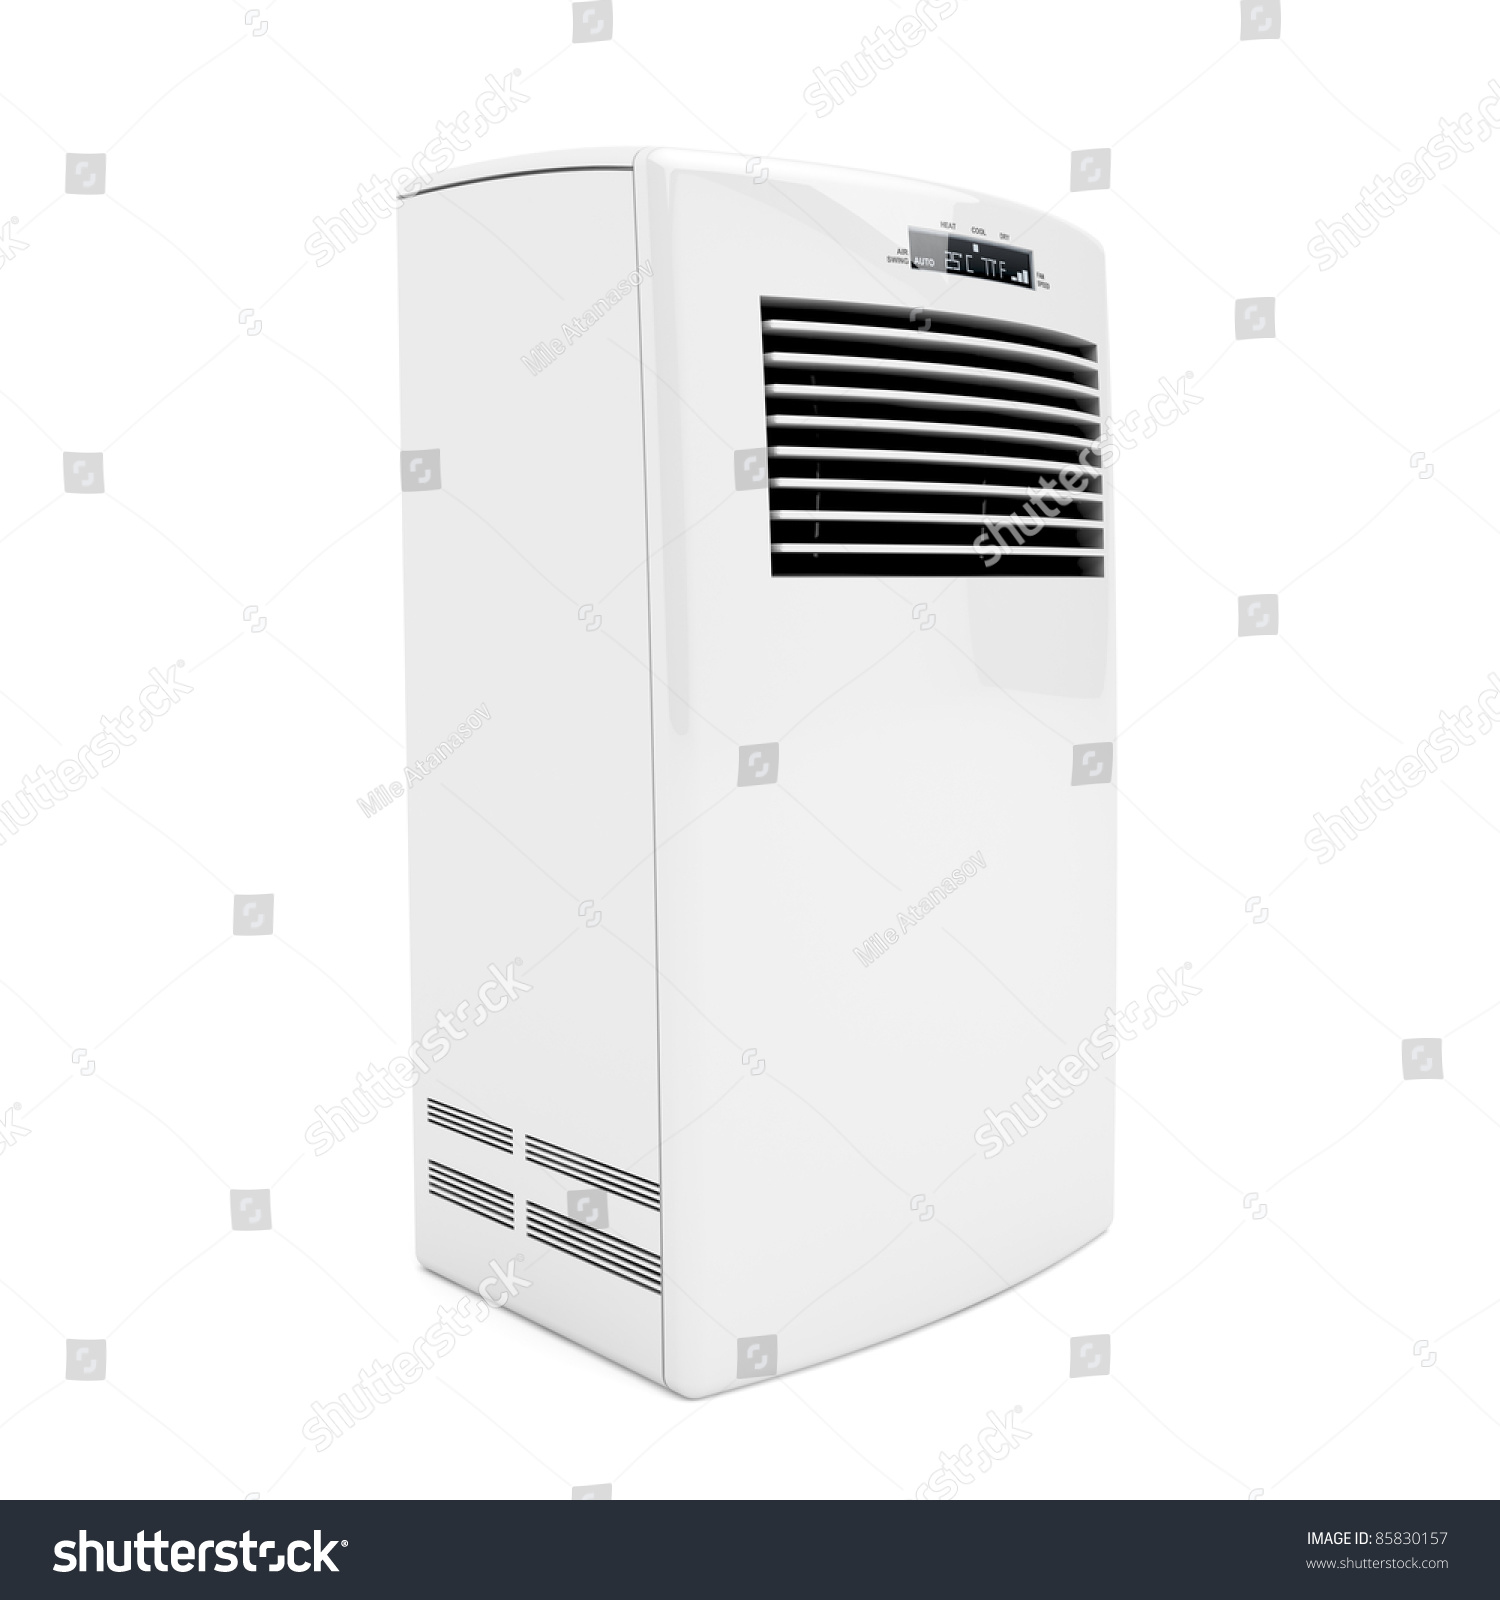 3d Image Of Portable Air Conditioner Stock Photo 85830157  #20252D